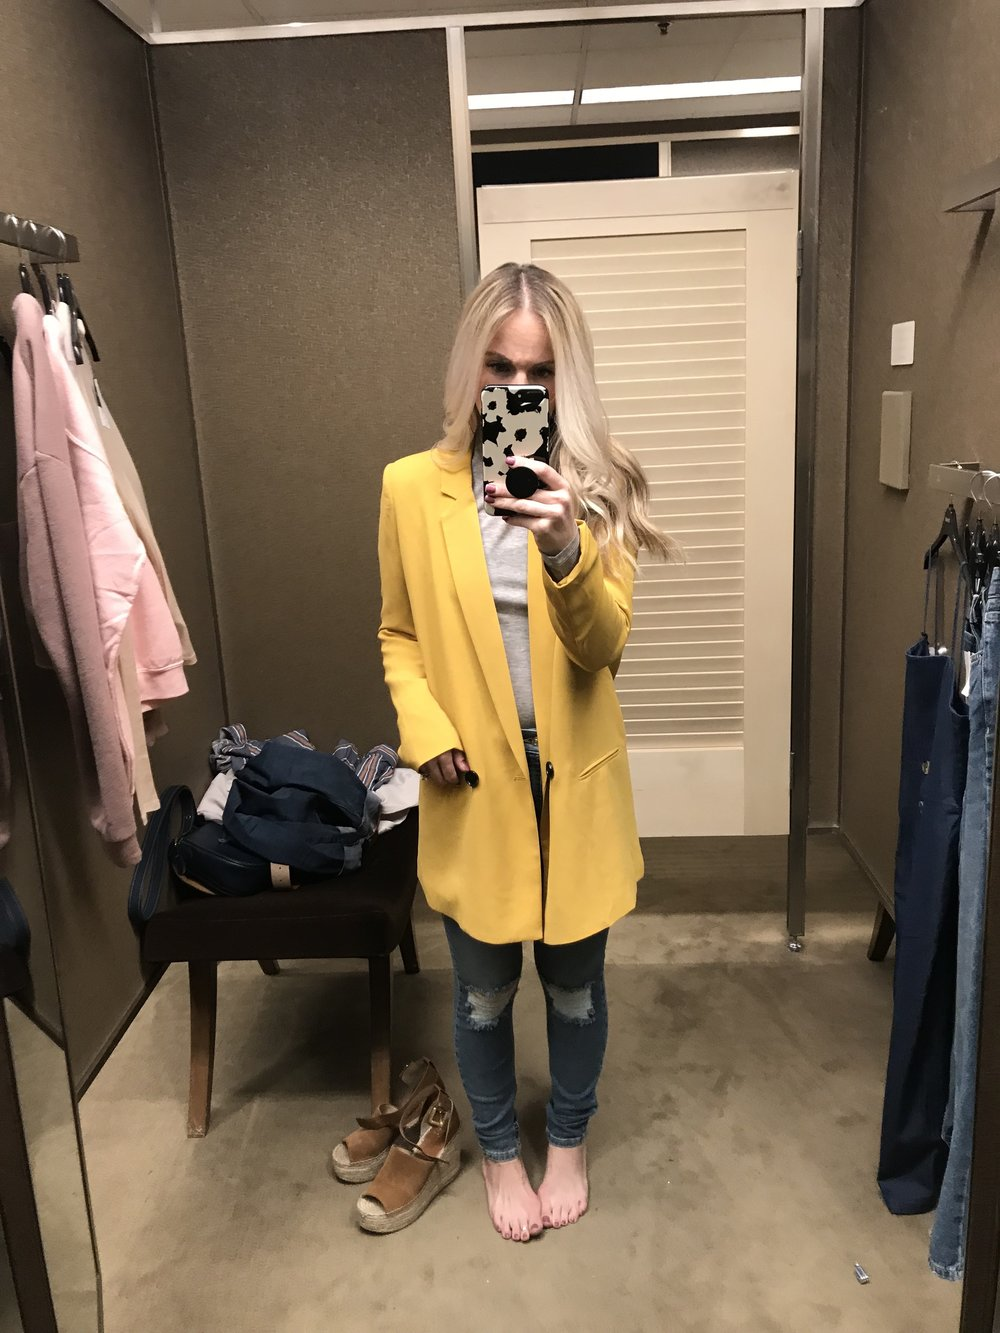 Spring Fashion Nordstrom Try on Sesh by popular Las Vegas style bloggers Life of a Sister